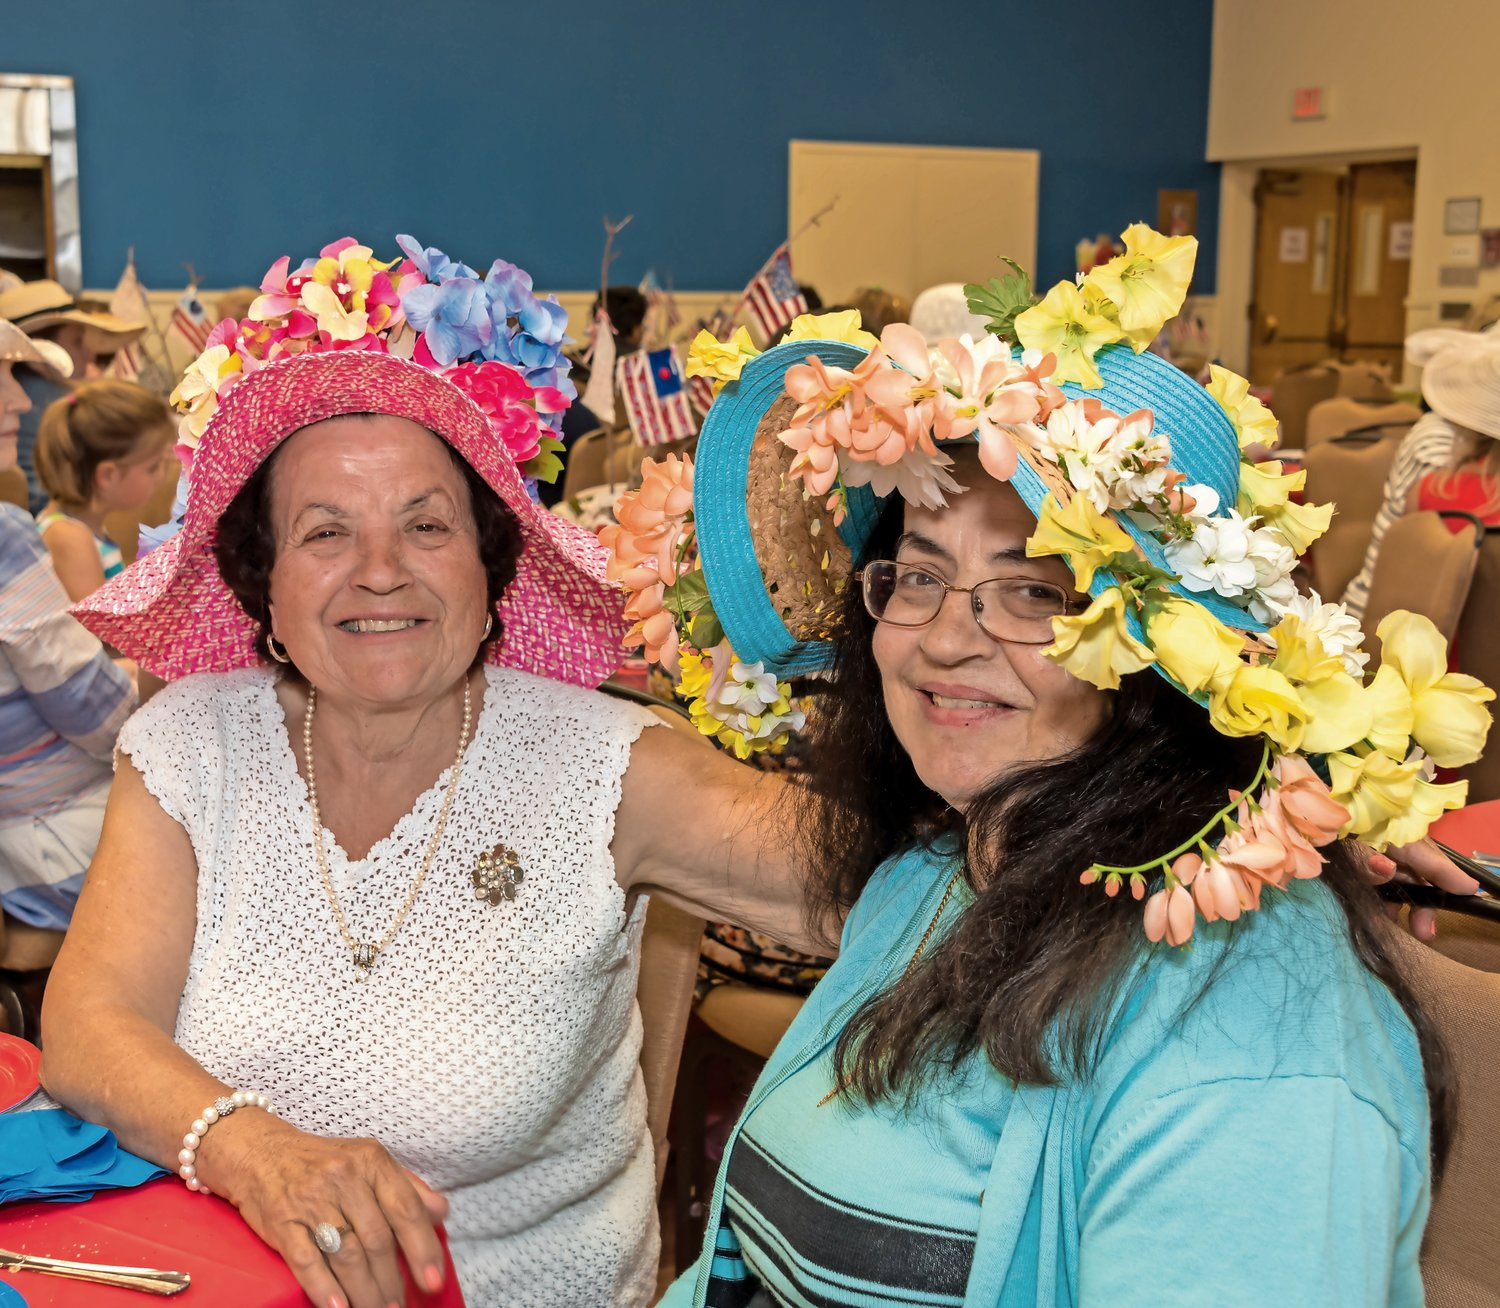 Josephine Grella, left, and Angela Pacardi worked hard on their hats.